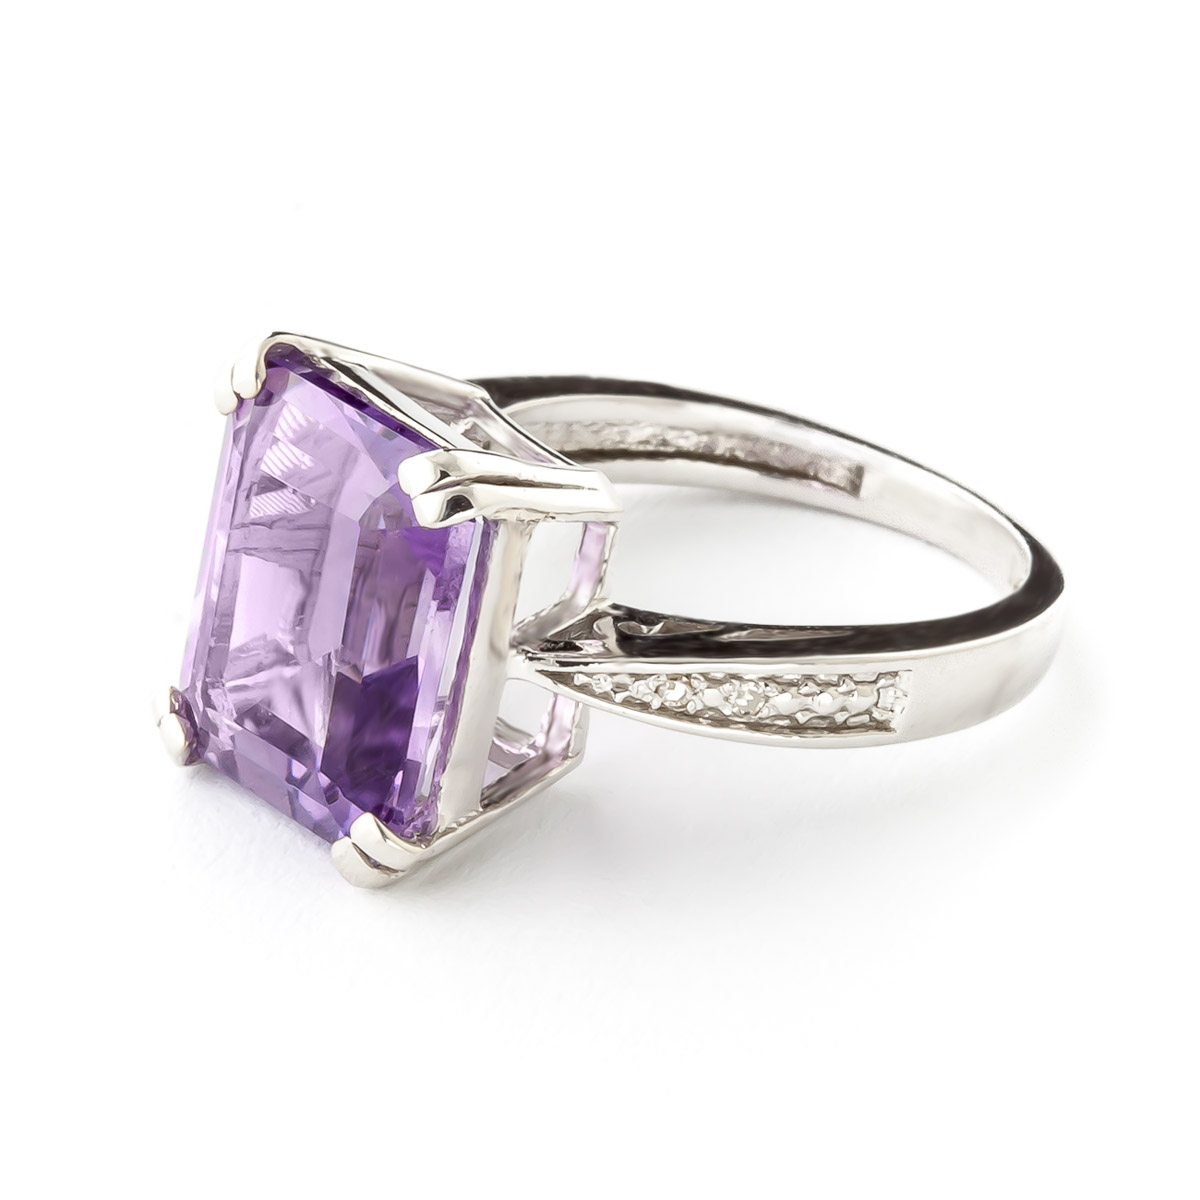 Octagon Cut Amethyst Ring 5.62 ctw in 9ct White Gold